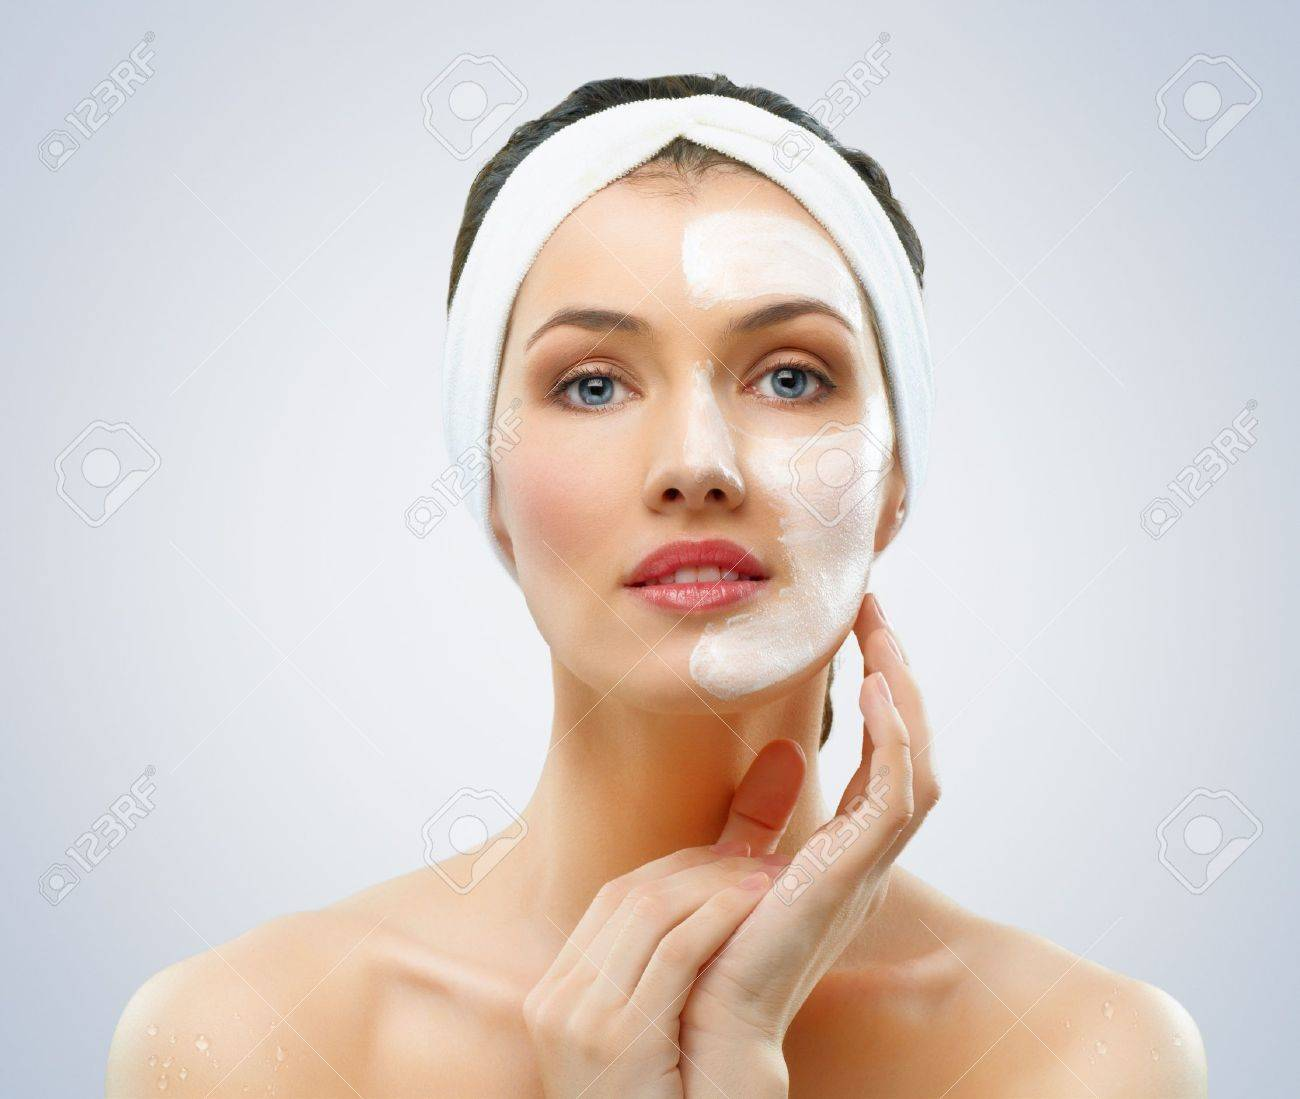 Image result for women with a face mask